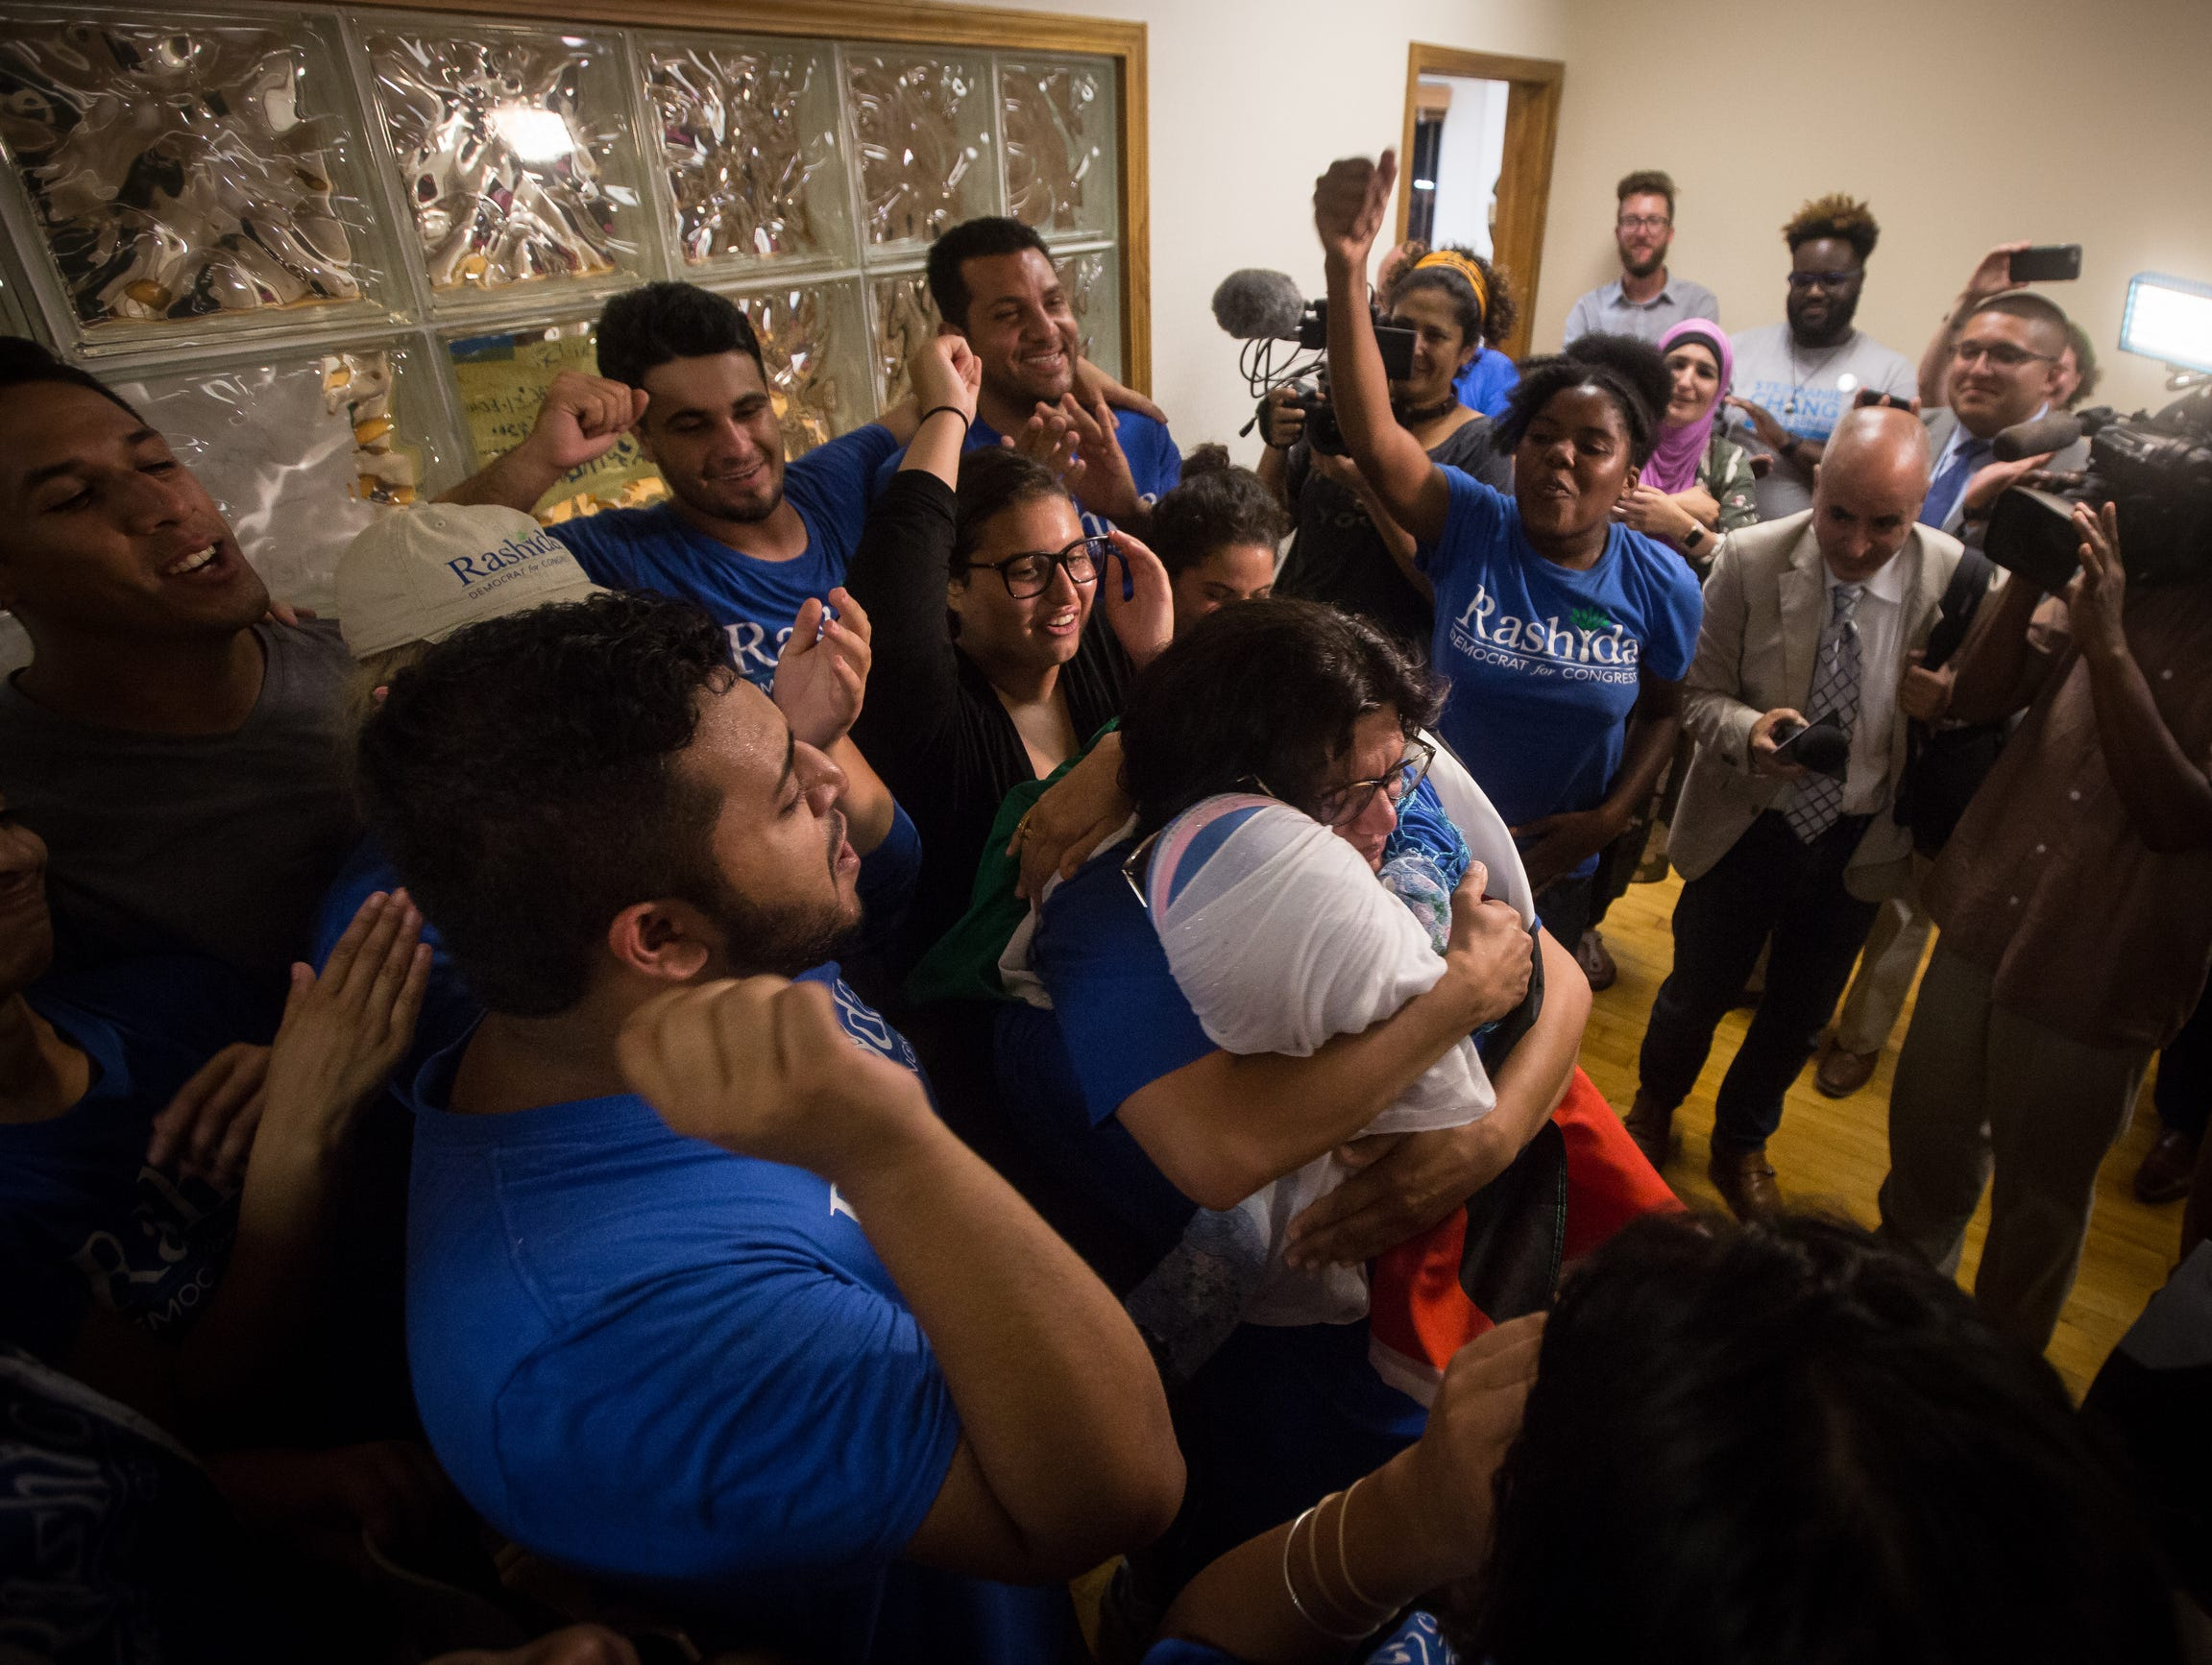 Rashida Tlaib celebrates and hugs her mother, Fatima Elabed, after winning the Democratic Primary in Michigan's 13th District at one of Tlaib's field offices in Northwest Detroit on Aug. 7, 2018.